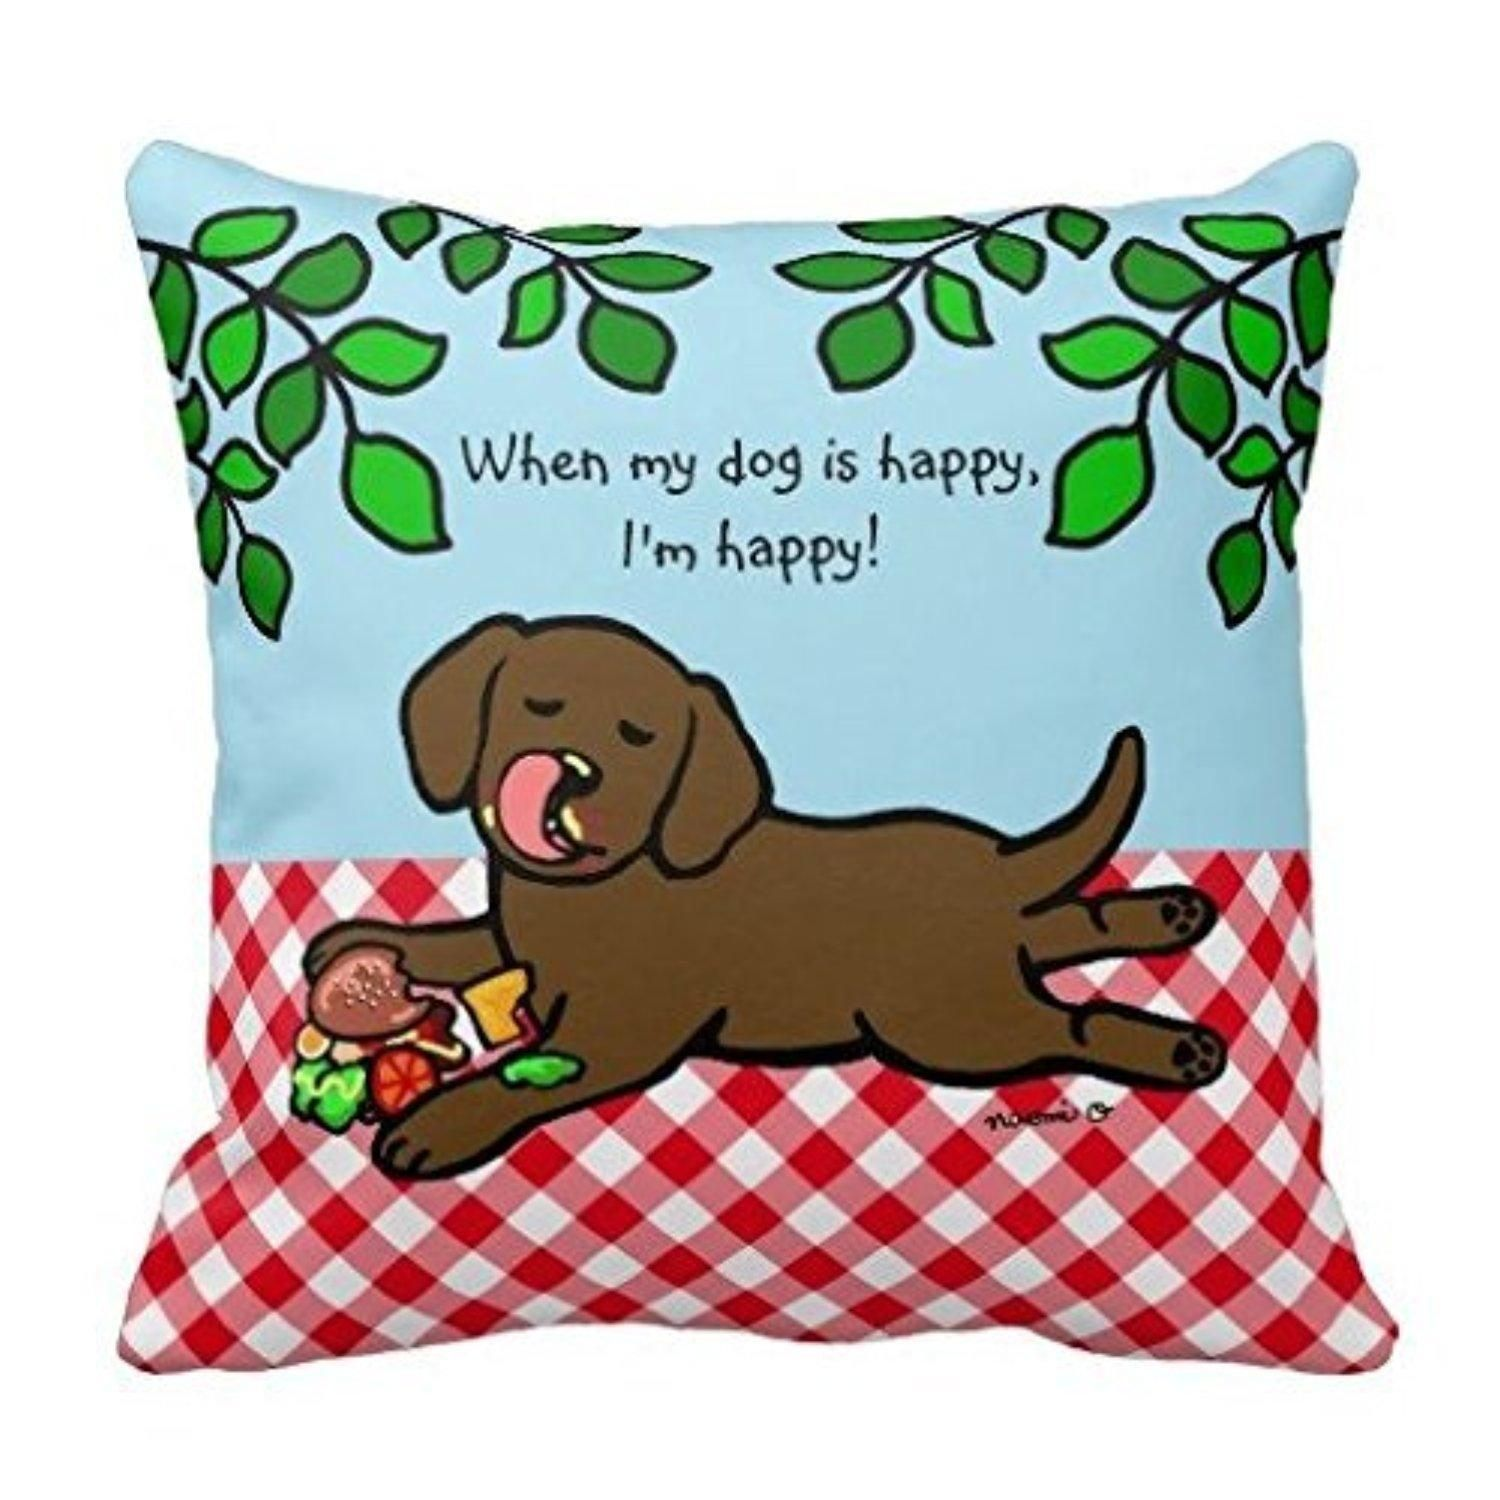 Snacking dog pi0093 Decorative pillowcases Dimensions: 18 ¡Á 18 inches / 45 cm ¡Á 45 cm ROOMSs - Brought to you by Avarsha.com